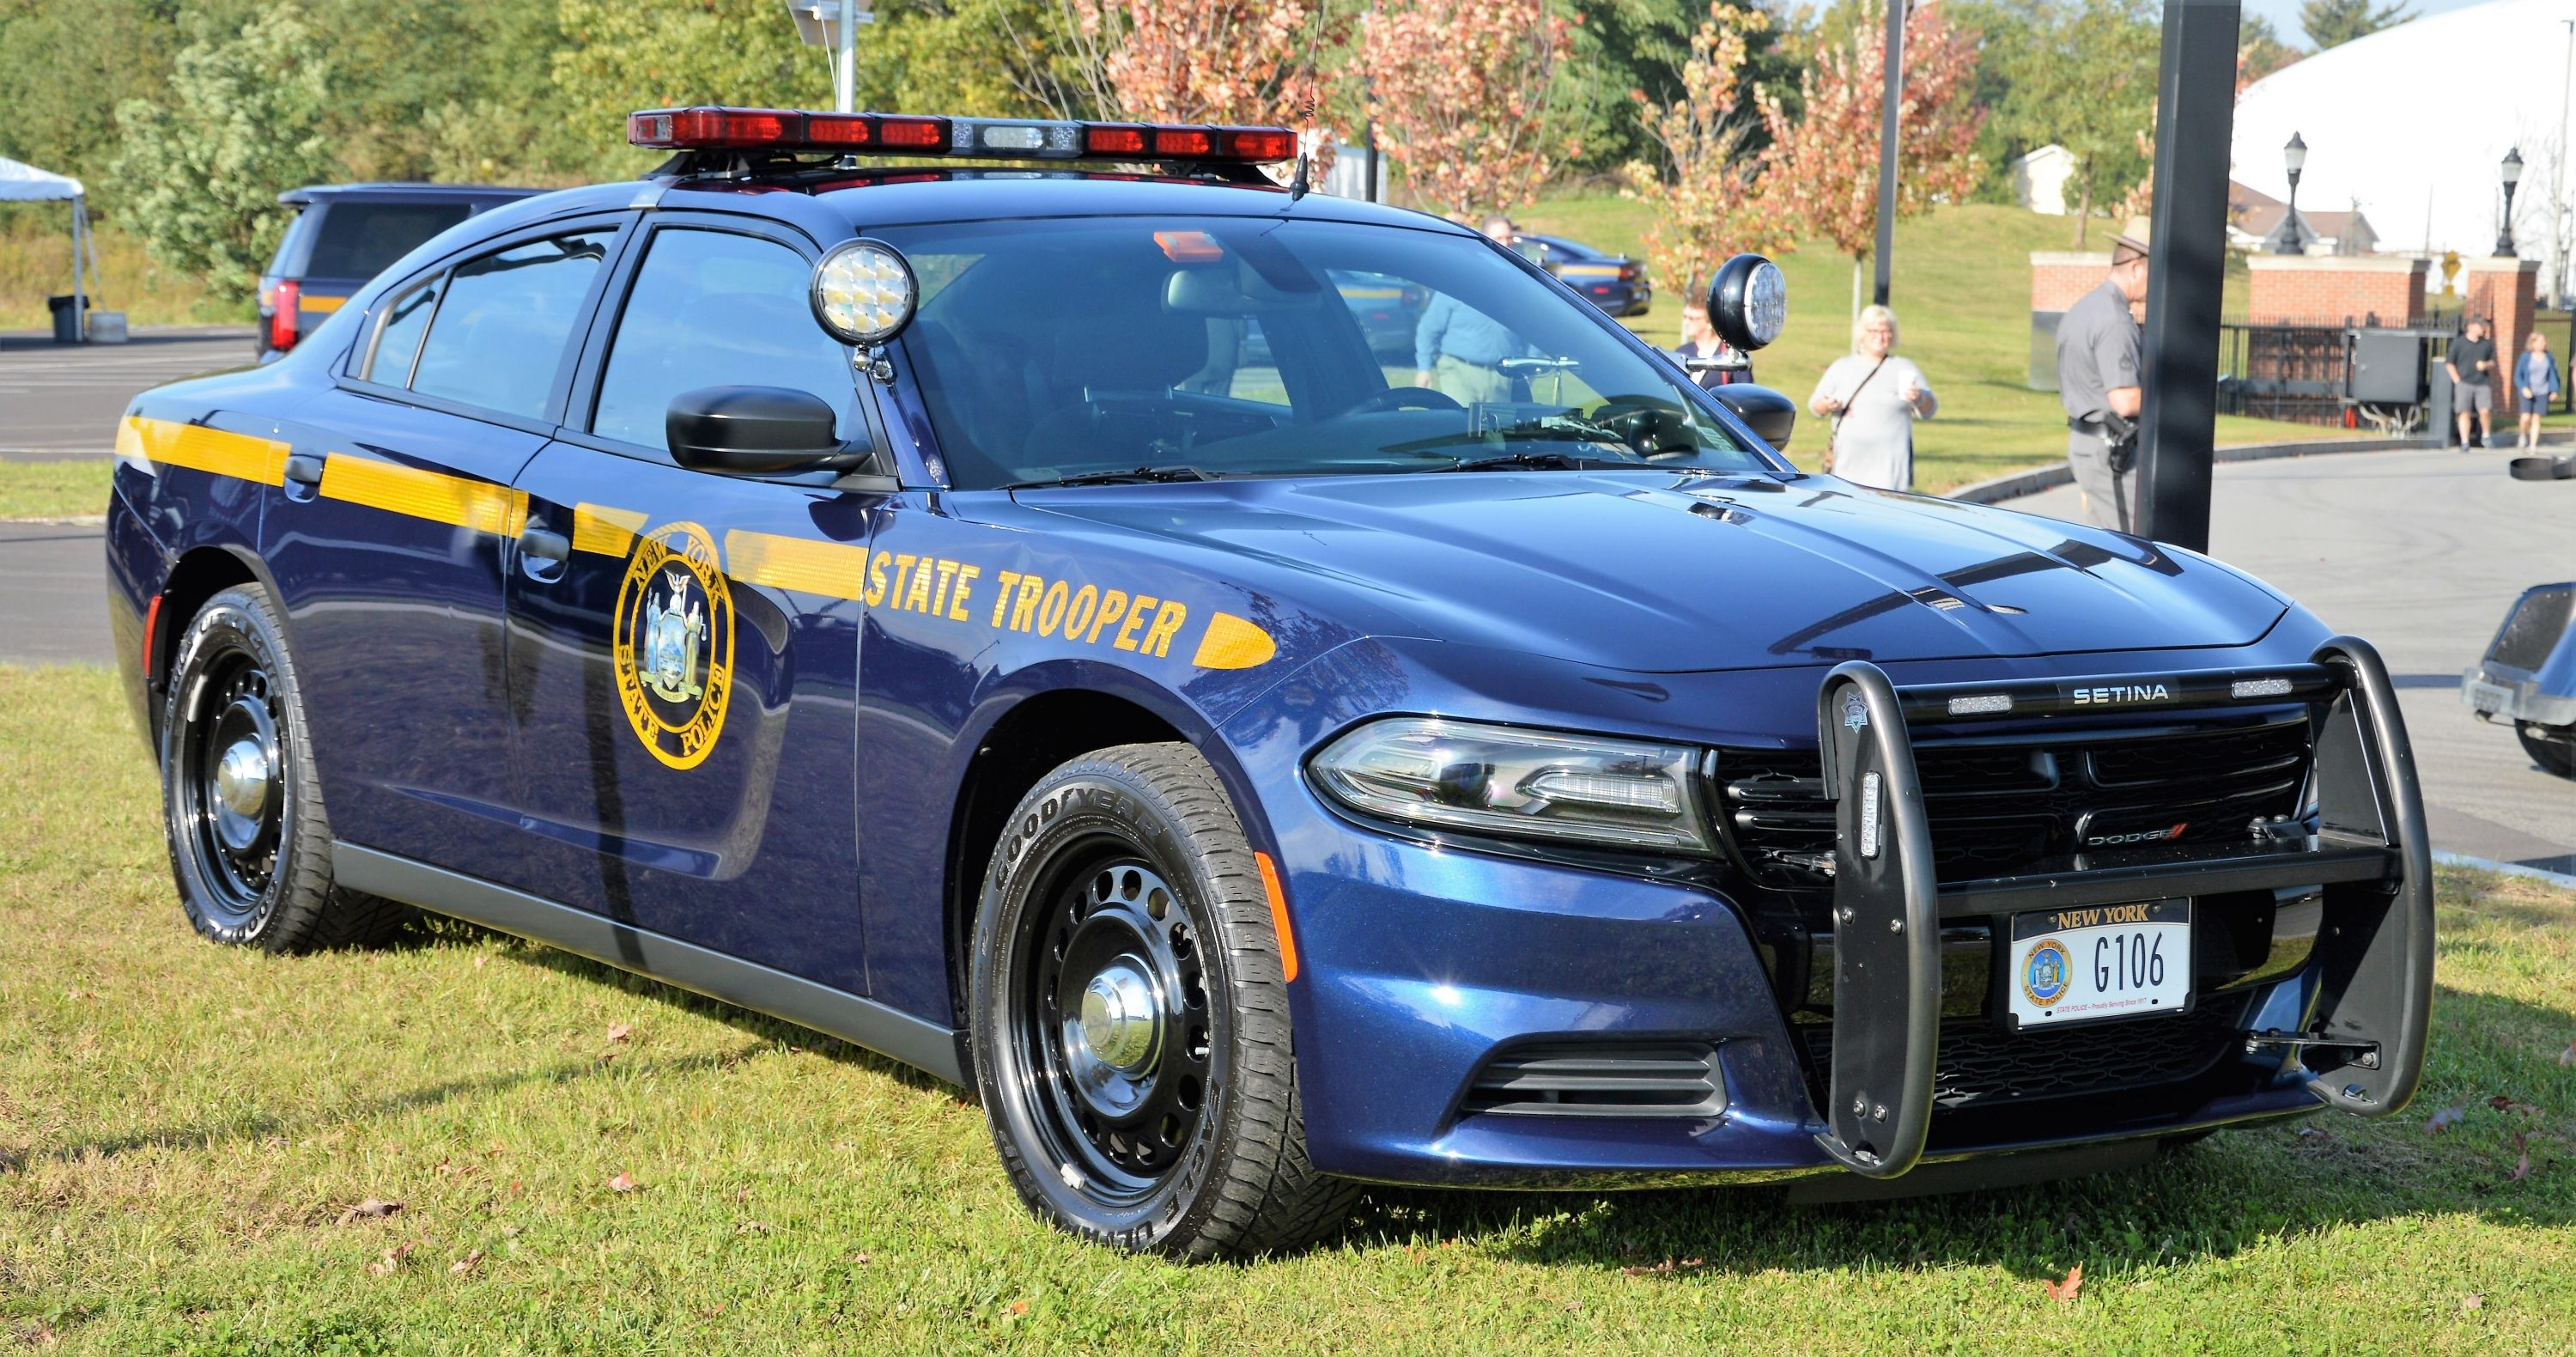 New York New York State Police Dodge Charger Sedan New York State Trooper Police Cars State Police